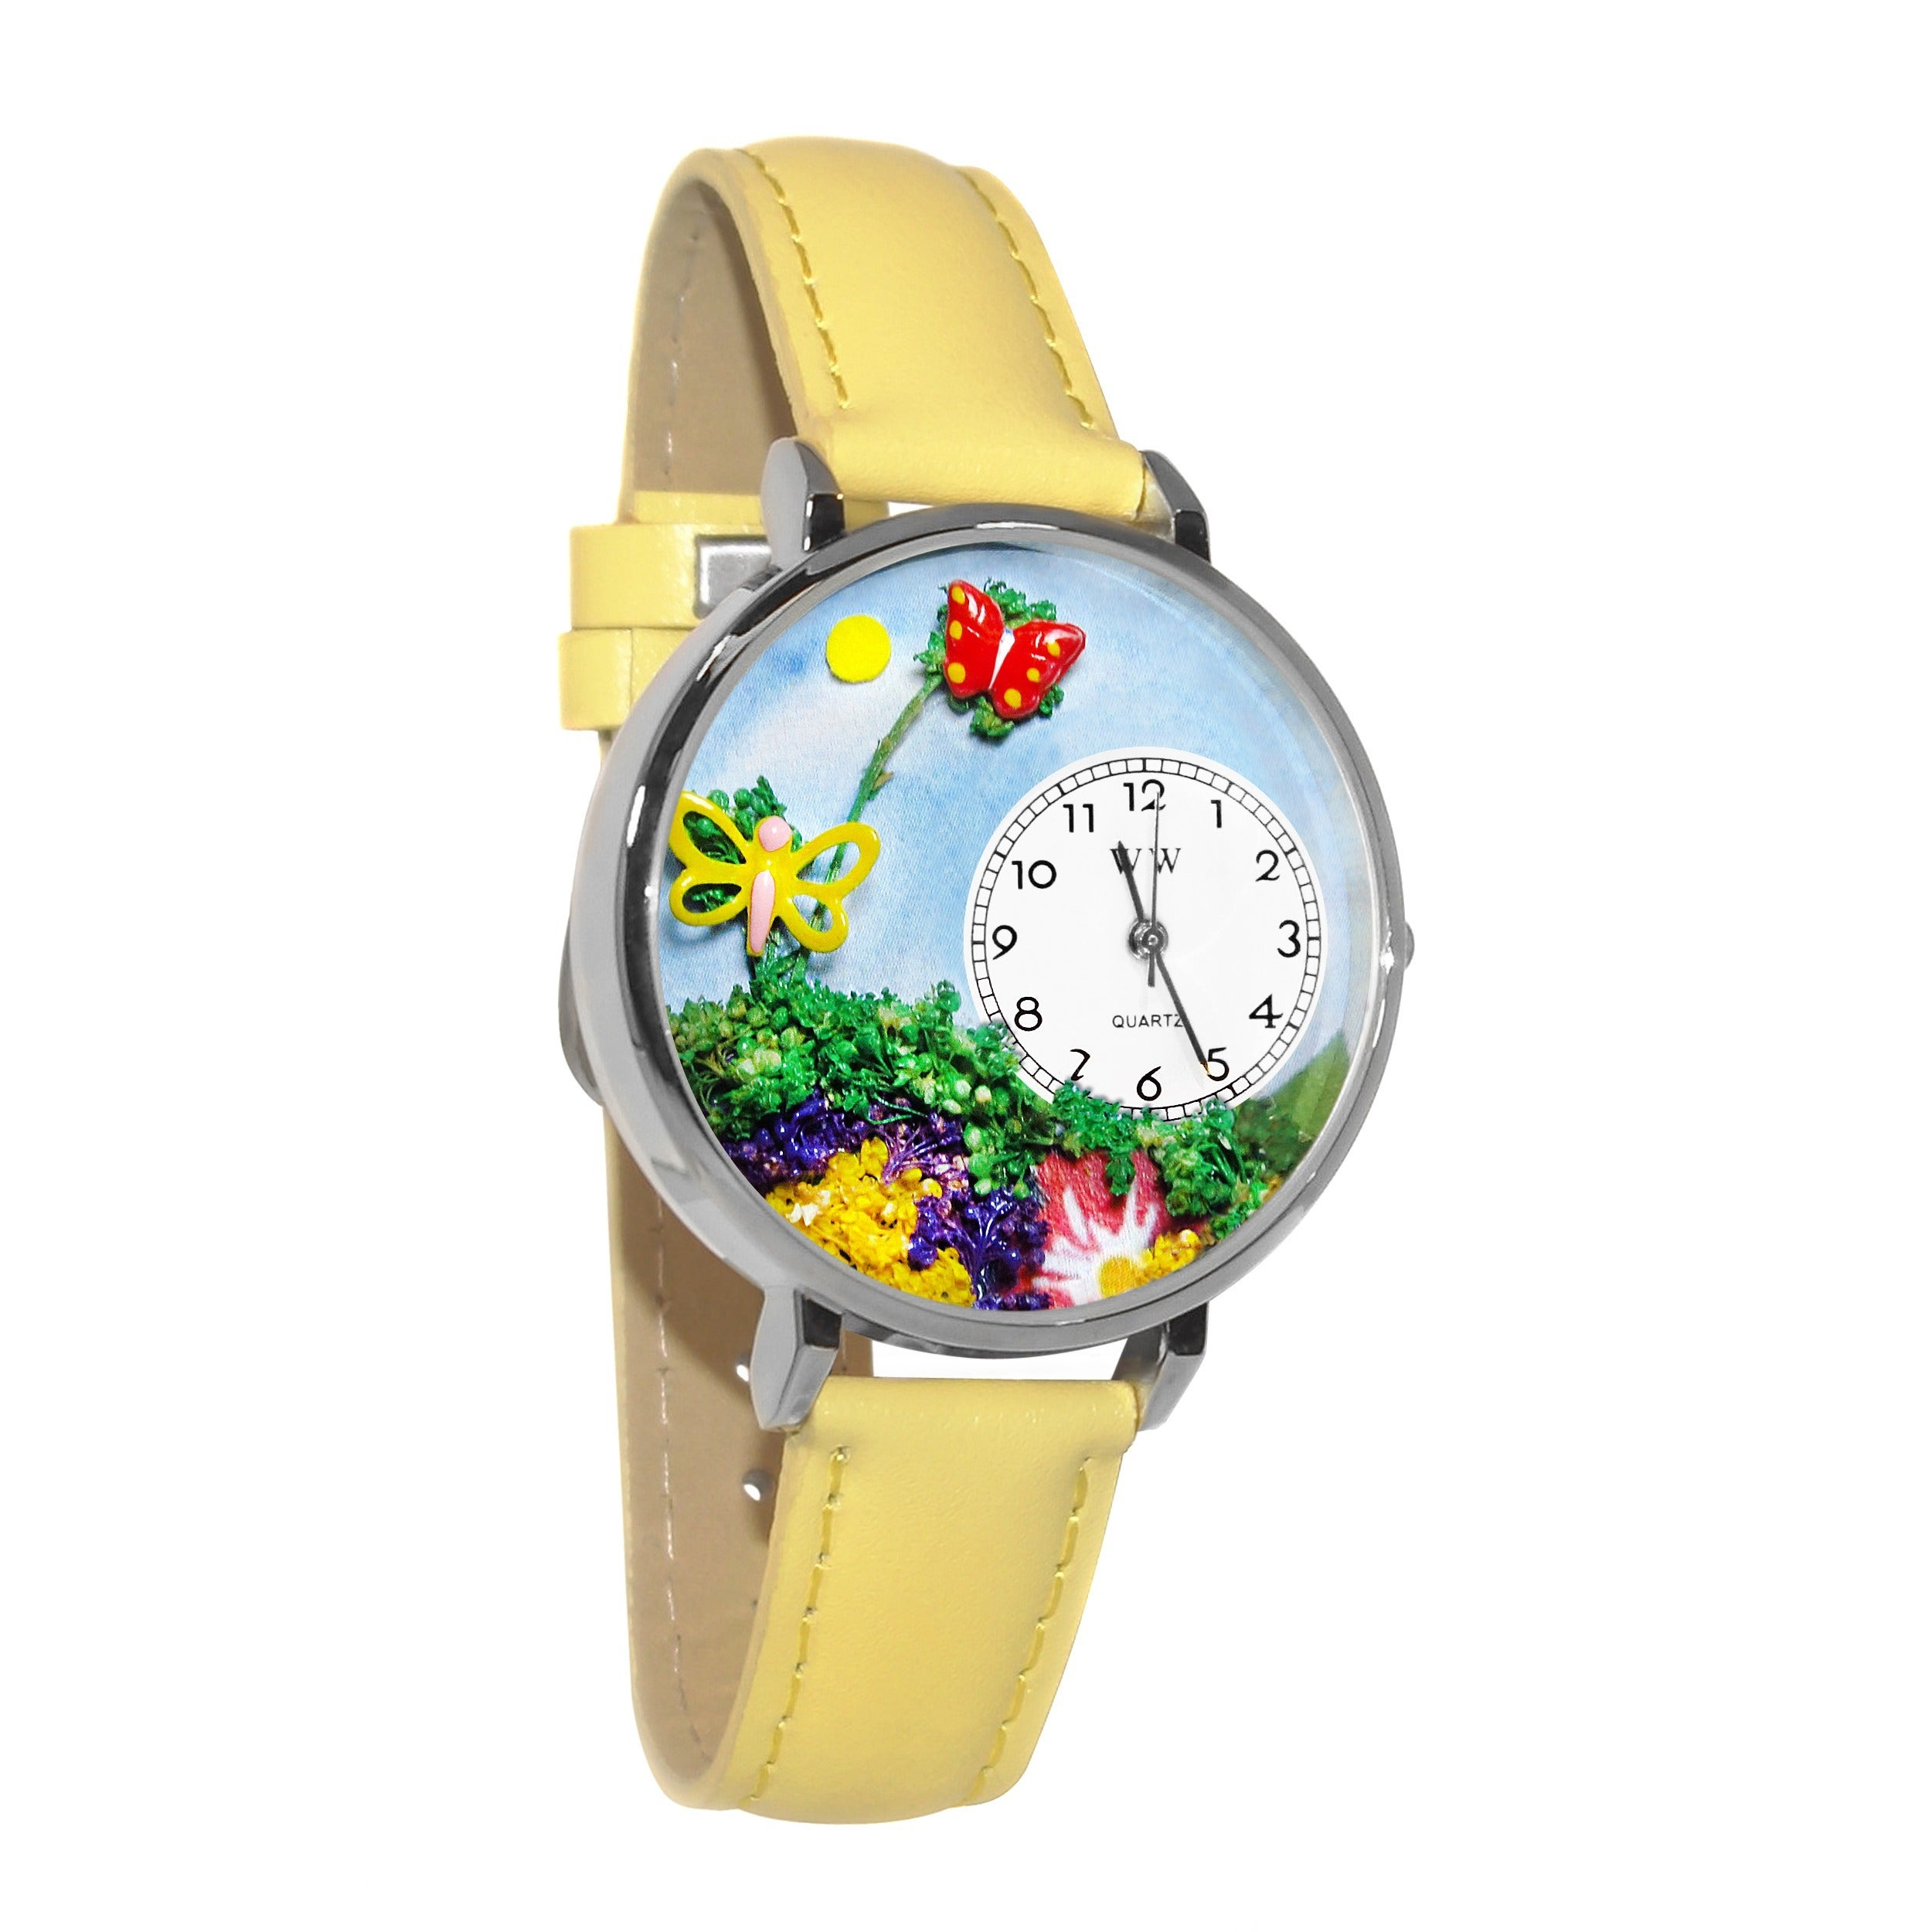 Whimsical Women's Butterfly Theme Yellow Leather Watch, S...